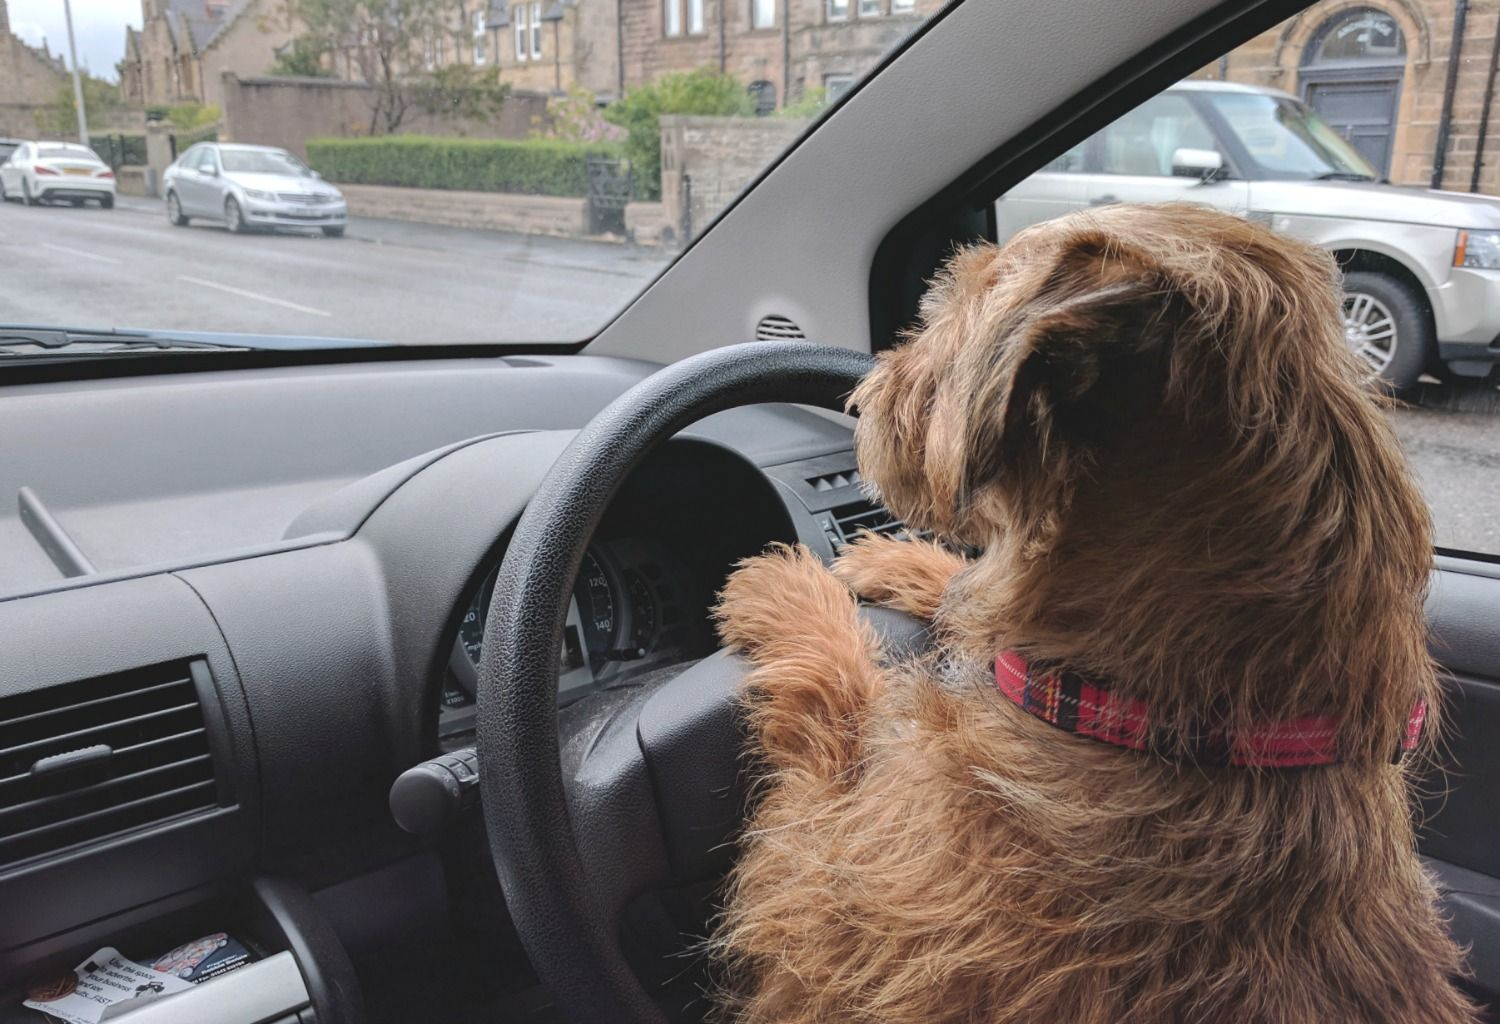 Admittedly, he does find the clutch a bit of a struggle. It's his short terrier legs. Note to self: the next car will be an automatic.